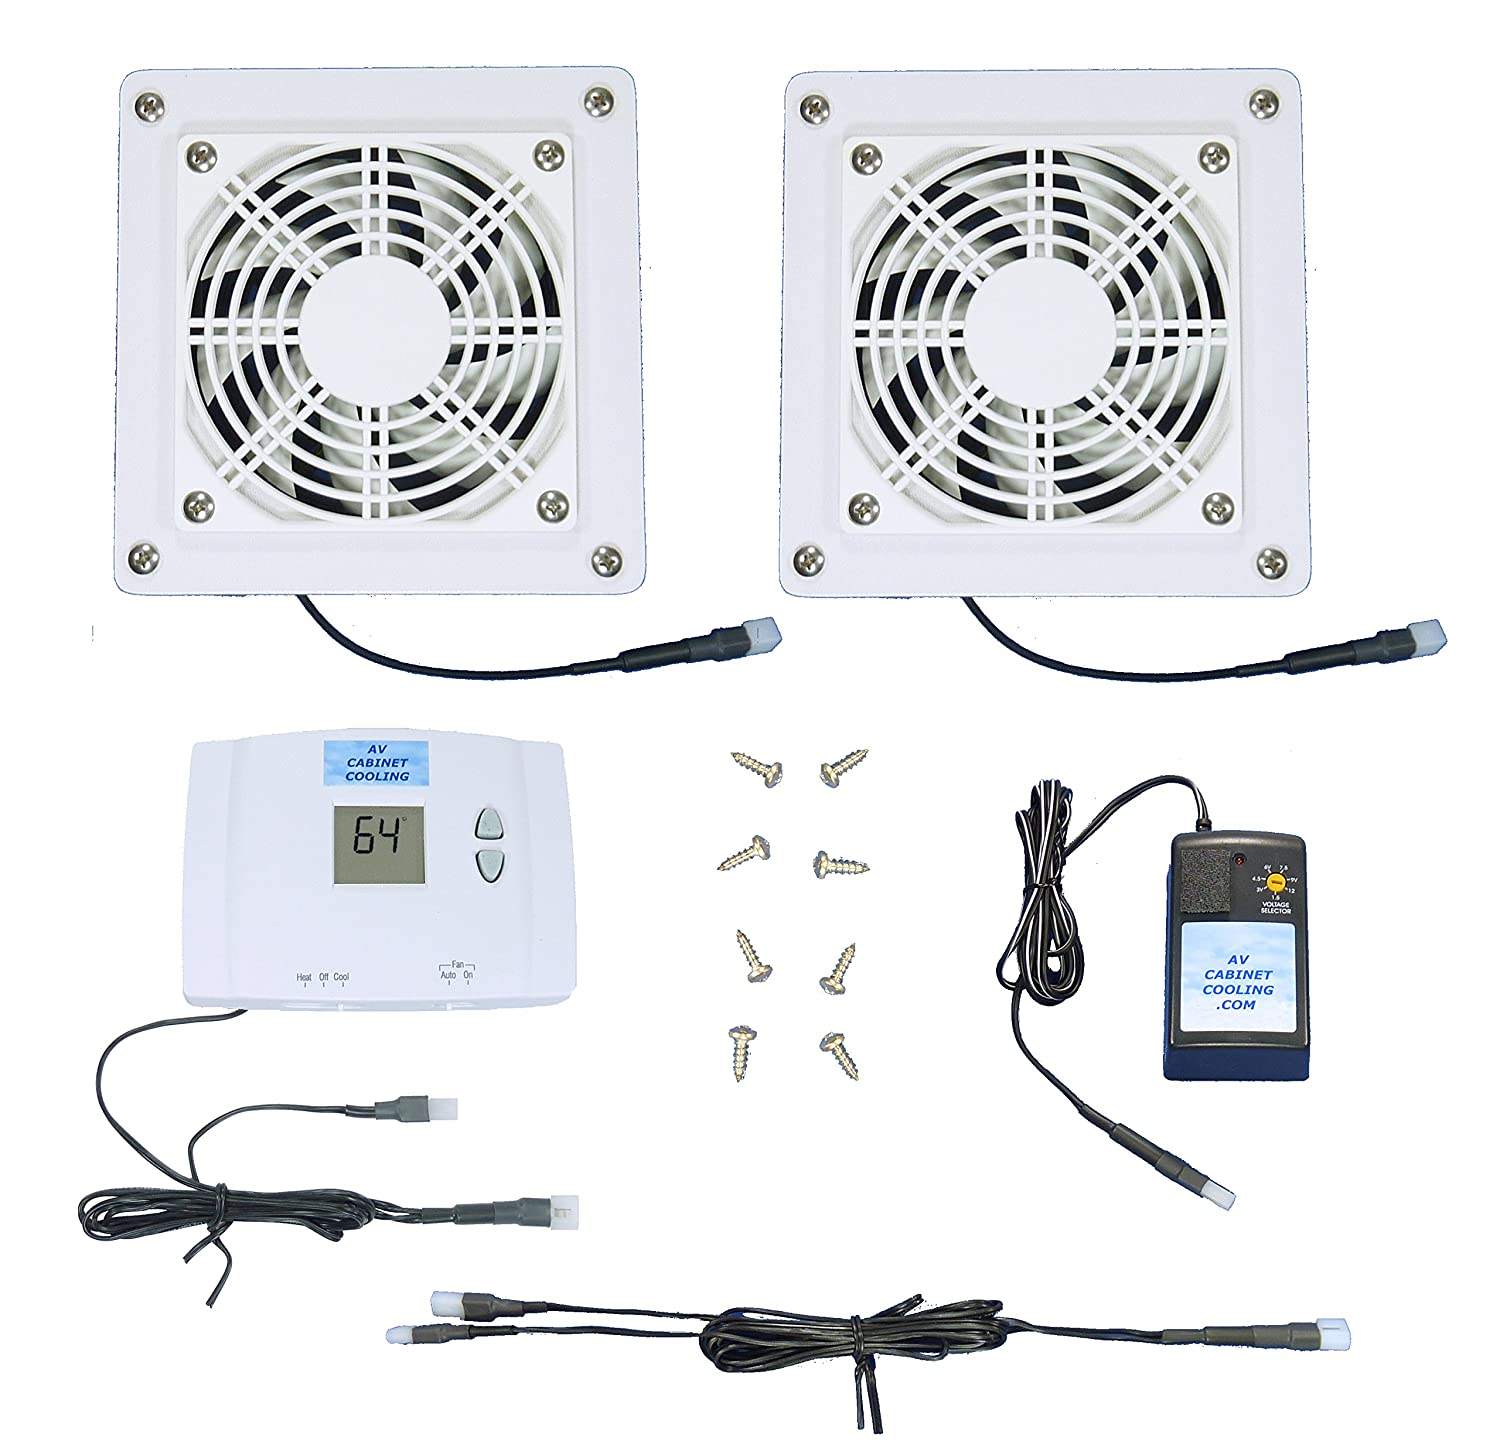 Amazon.com: 2 Zone AV Cabinet Multispeed Cooling Fans With Digital  Thermostat (White Model): Electronics